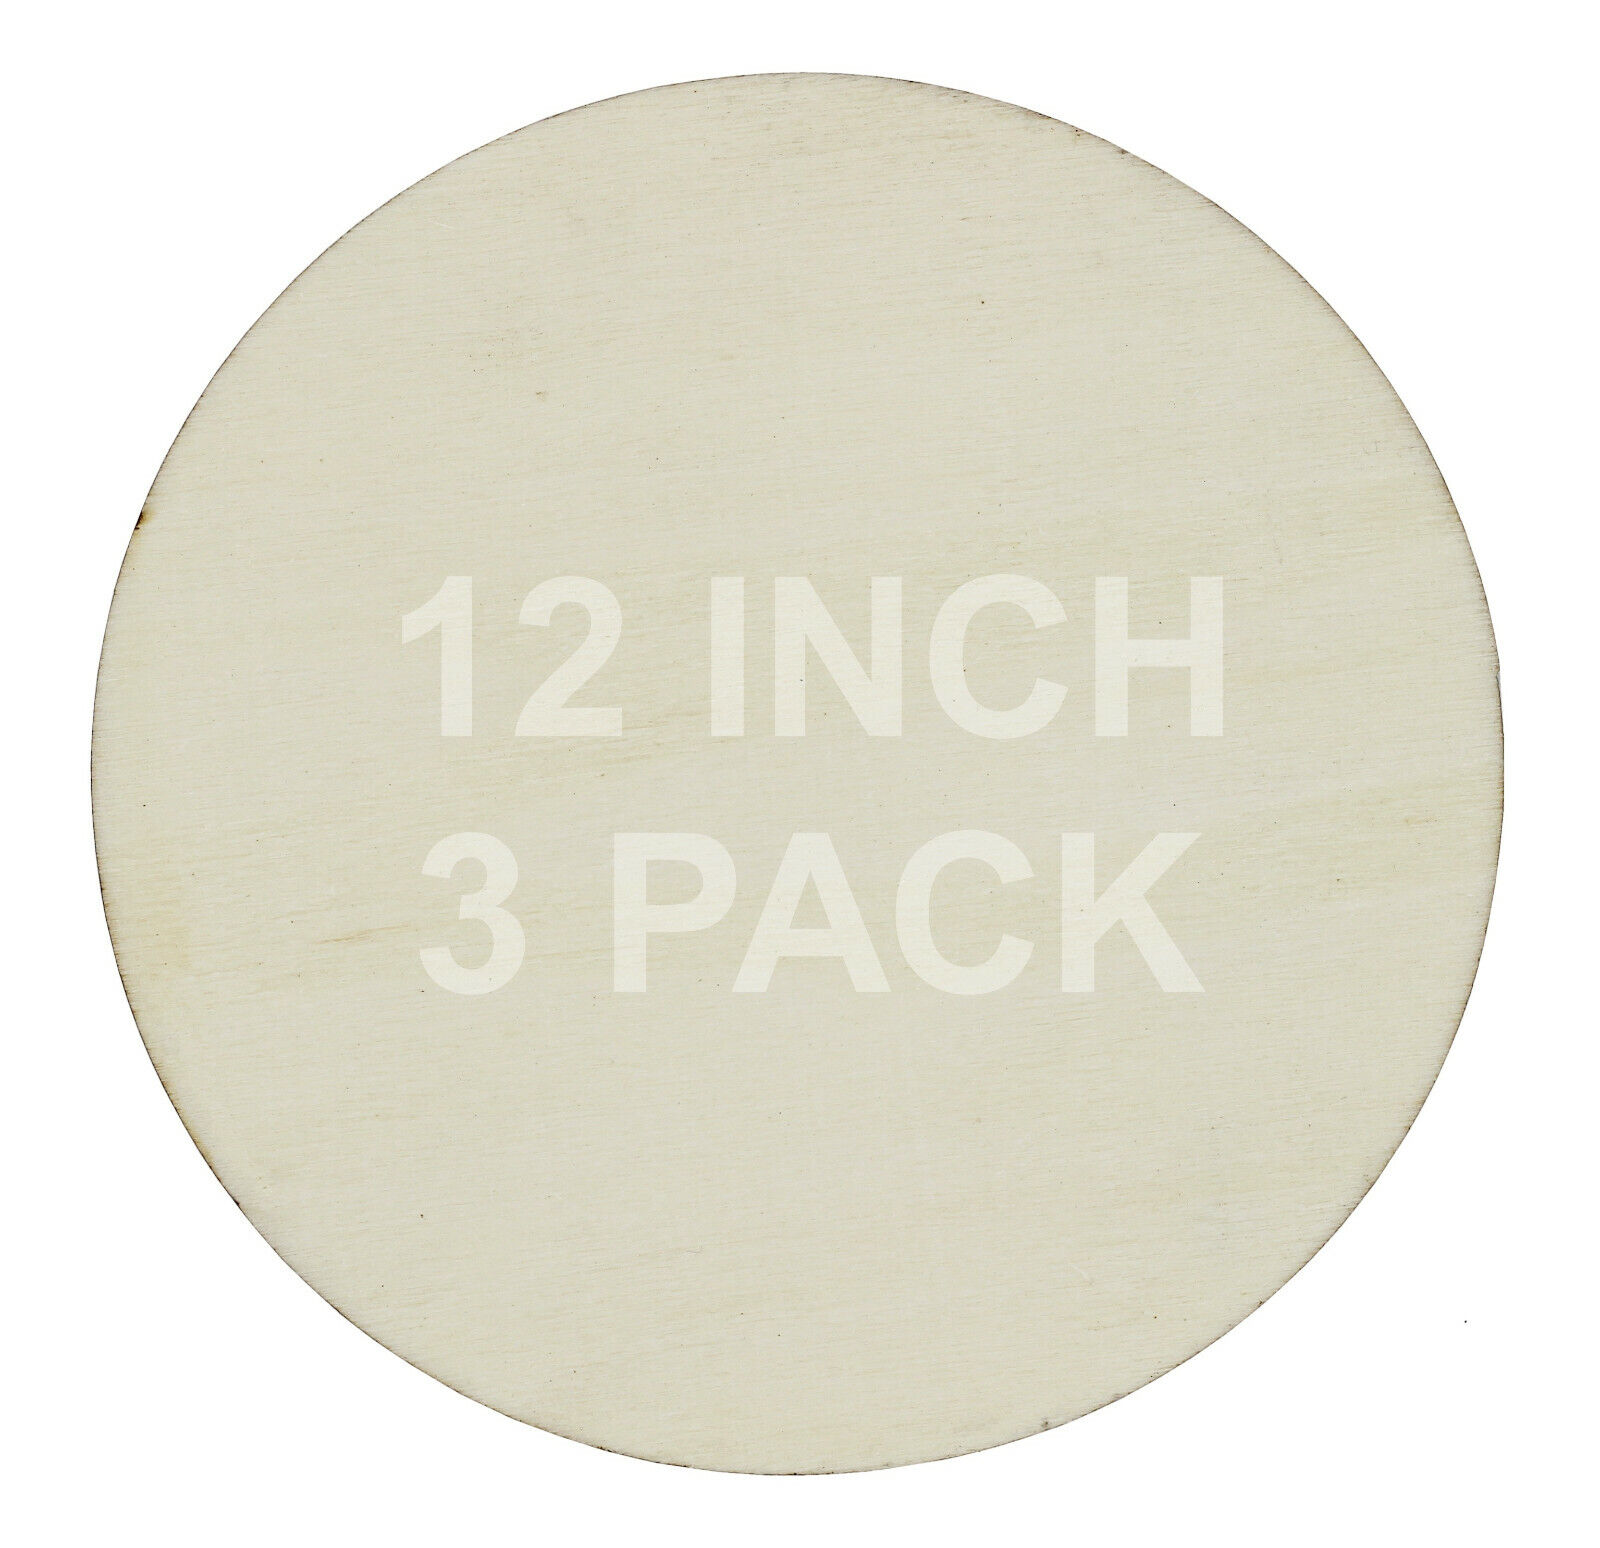 12 inch Round Circle Cutout Shapes, DIY Unfinished Wood Craft Shape – Pack of 3 Crafting Pieces